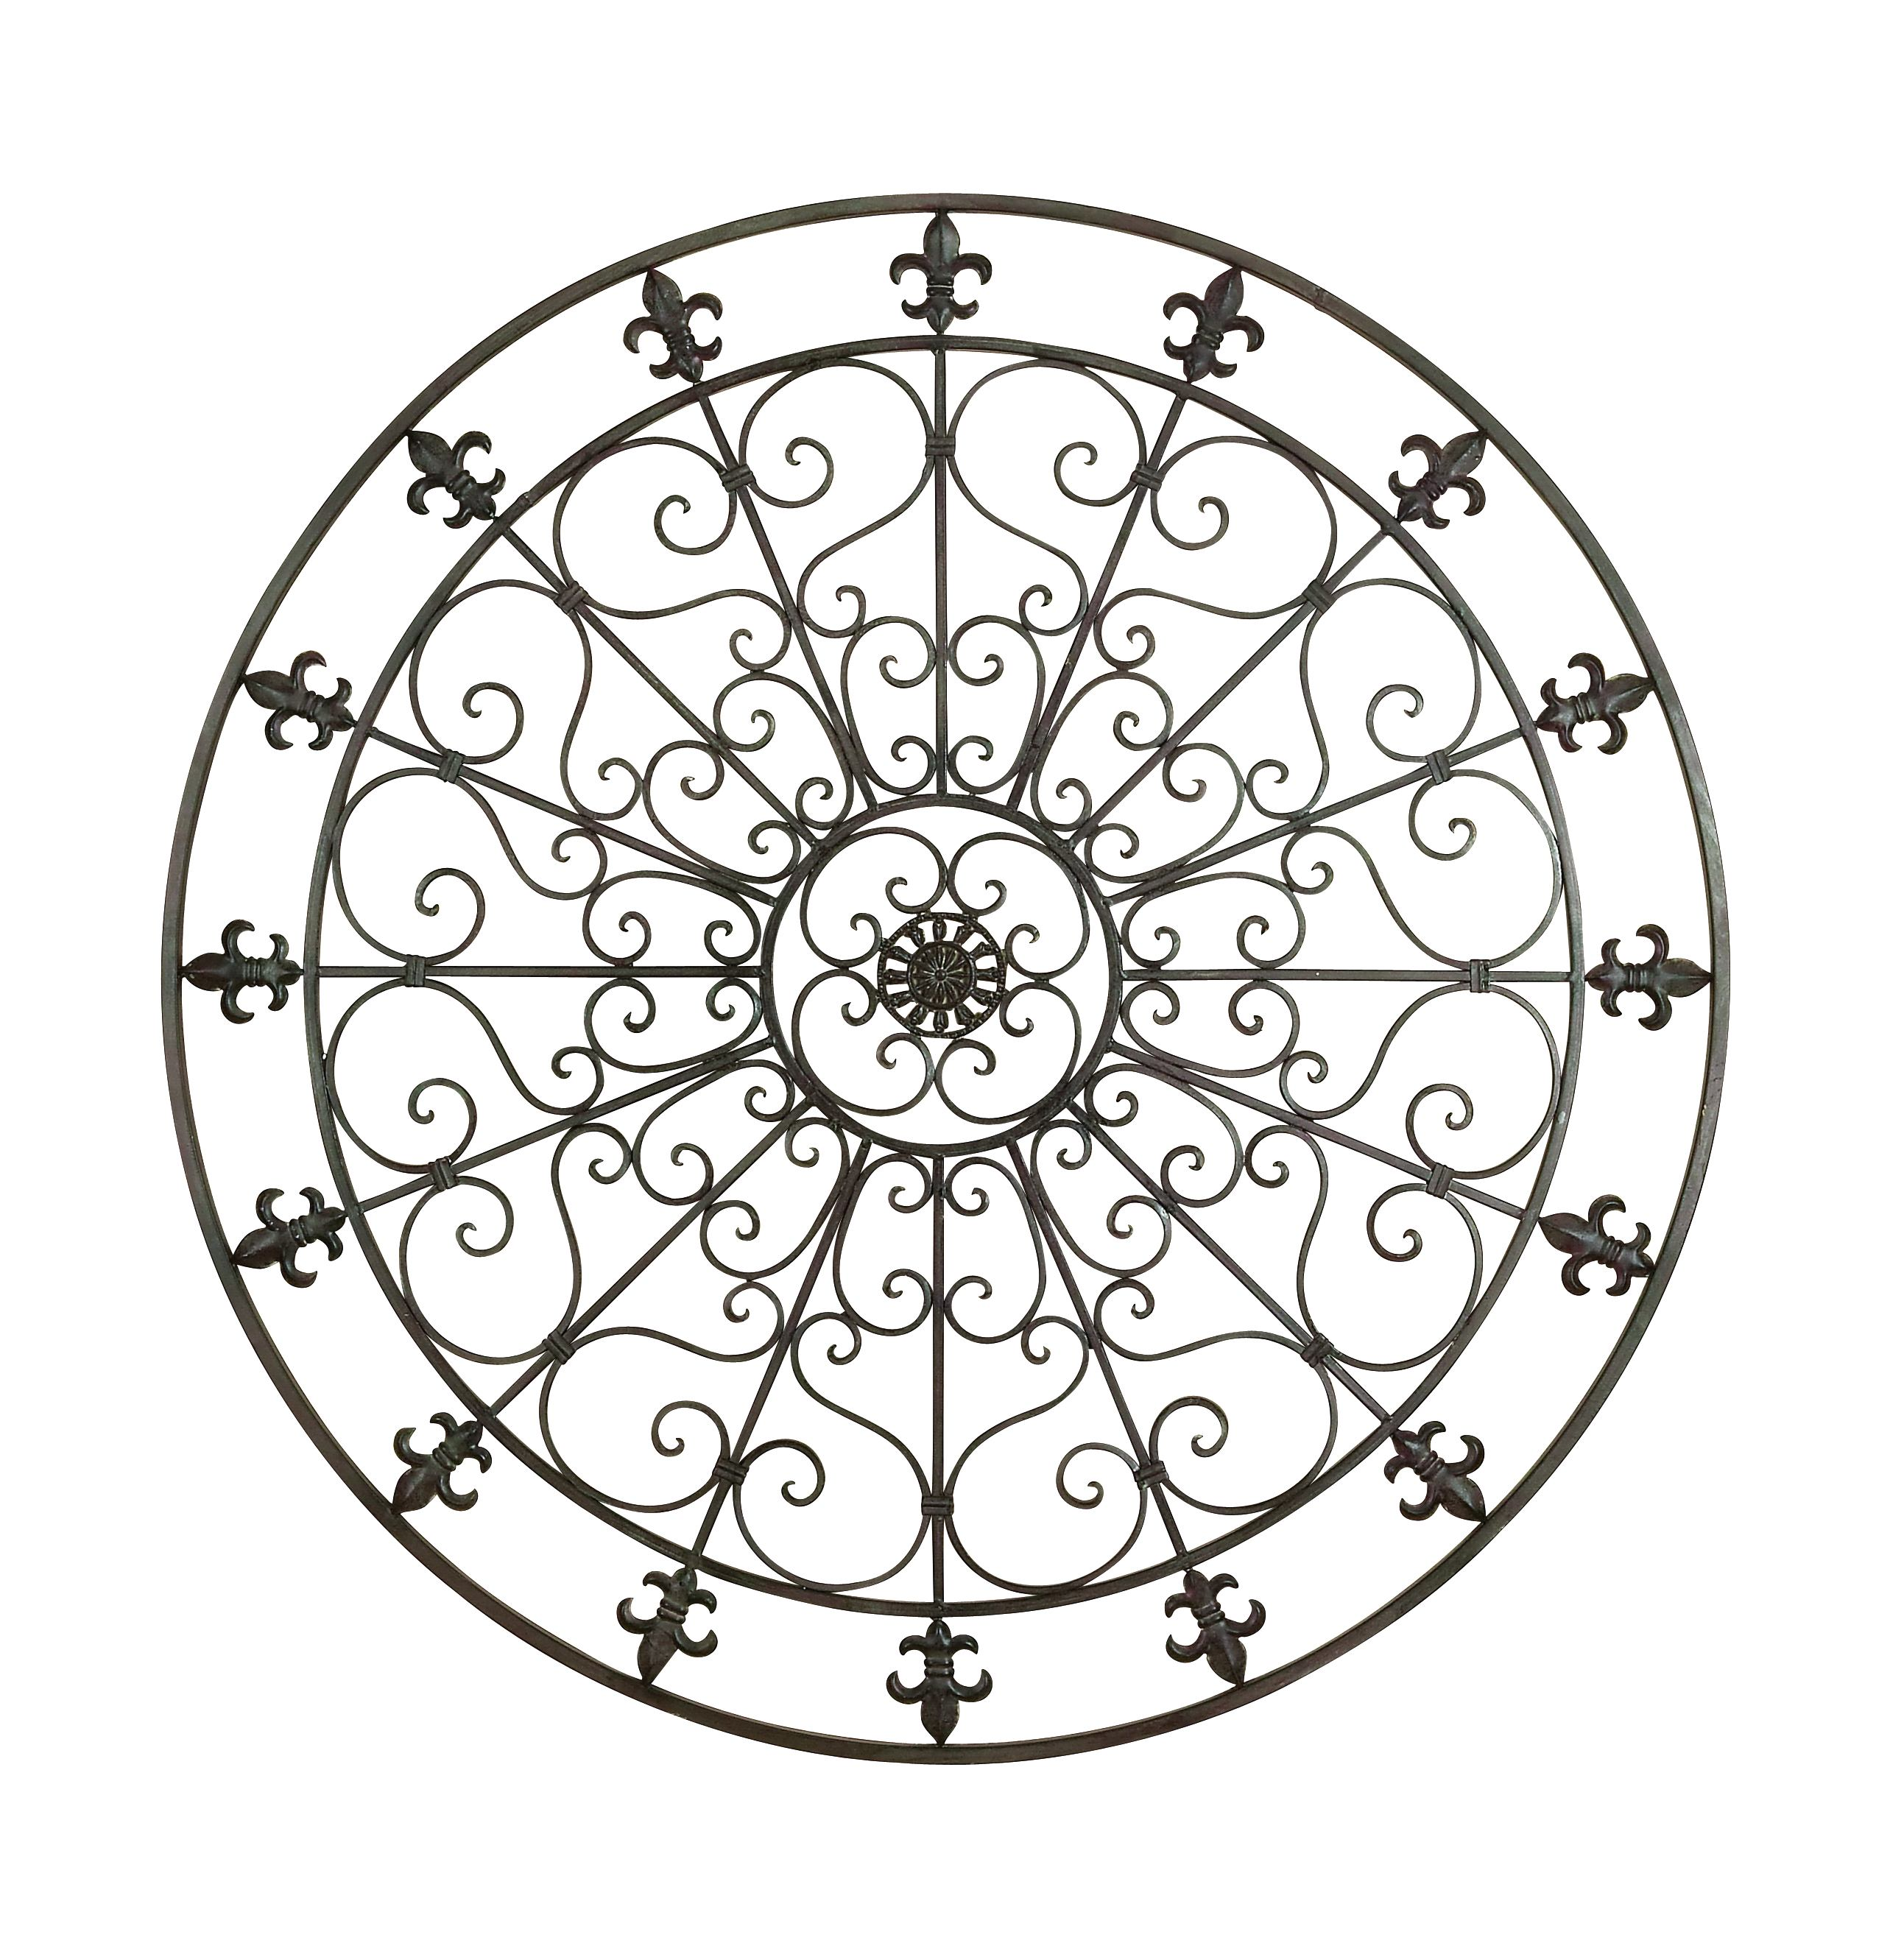 Decmode Rustic 42 Inch Fleur-De-Lis and Scrollwork Round Metal Wall Decor by DecMode